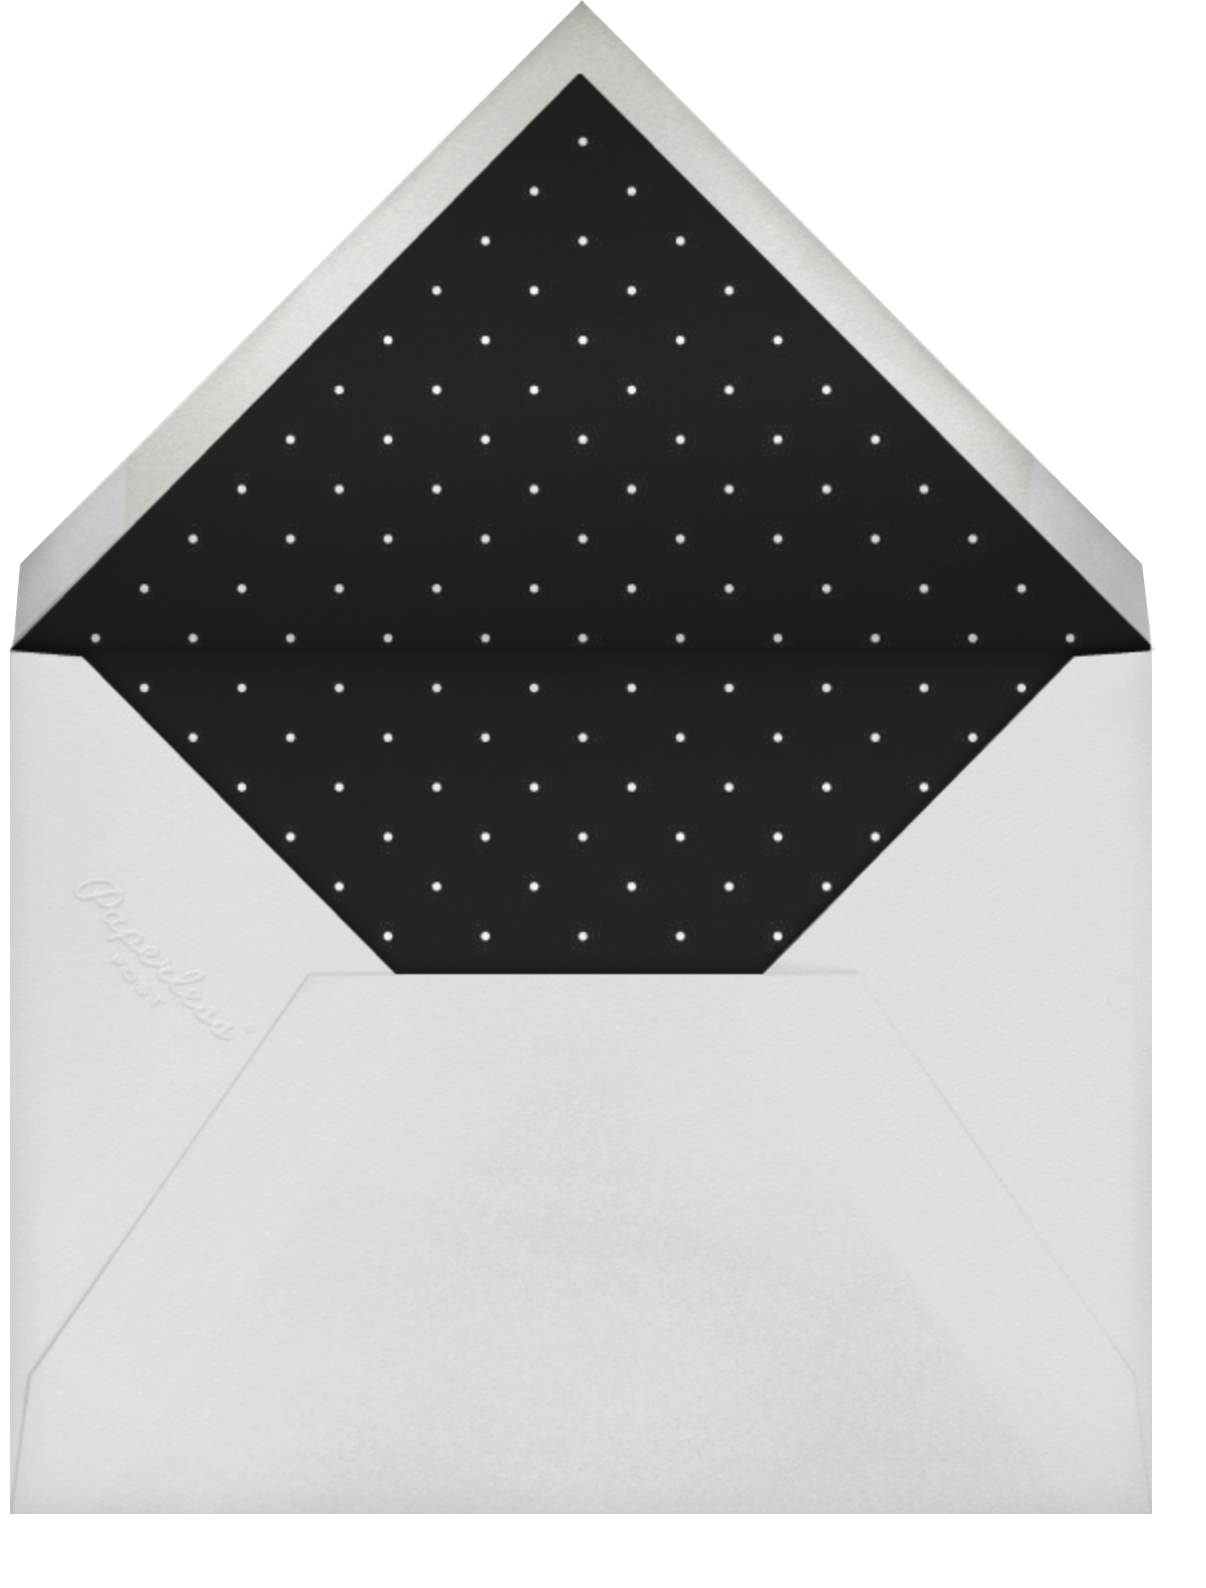 Las Vegas Skyline View (Save the Date) - Black/White - Paperless Post - Save the date - envelope back